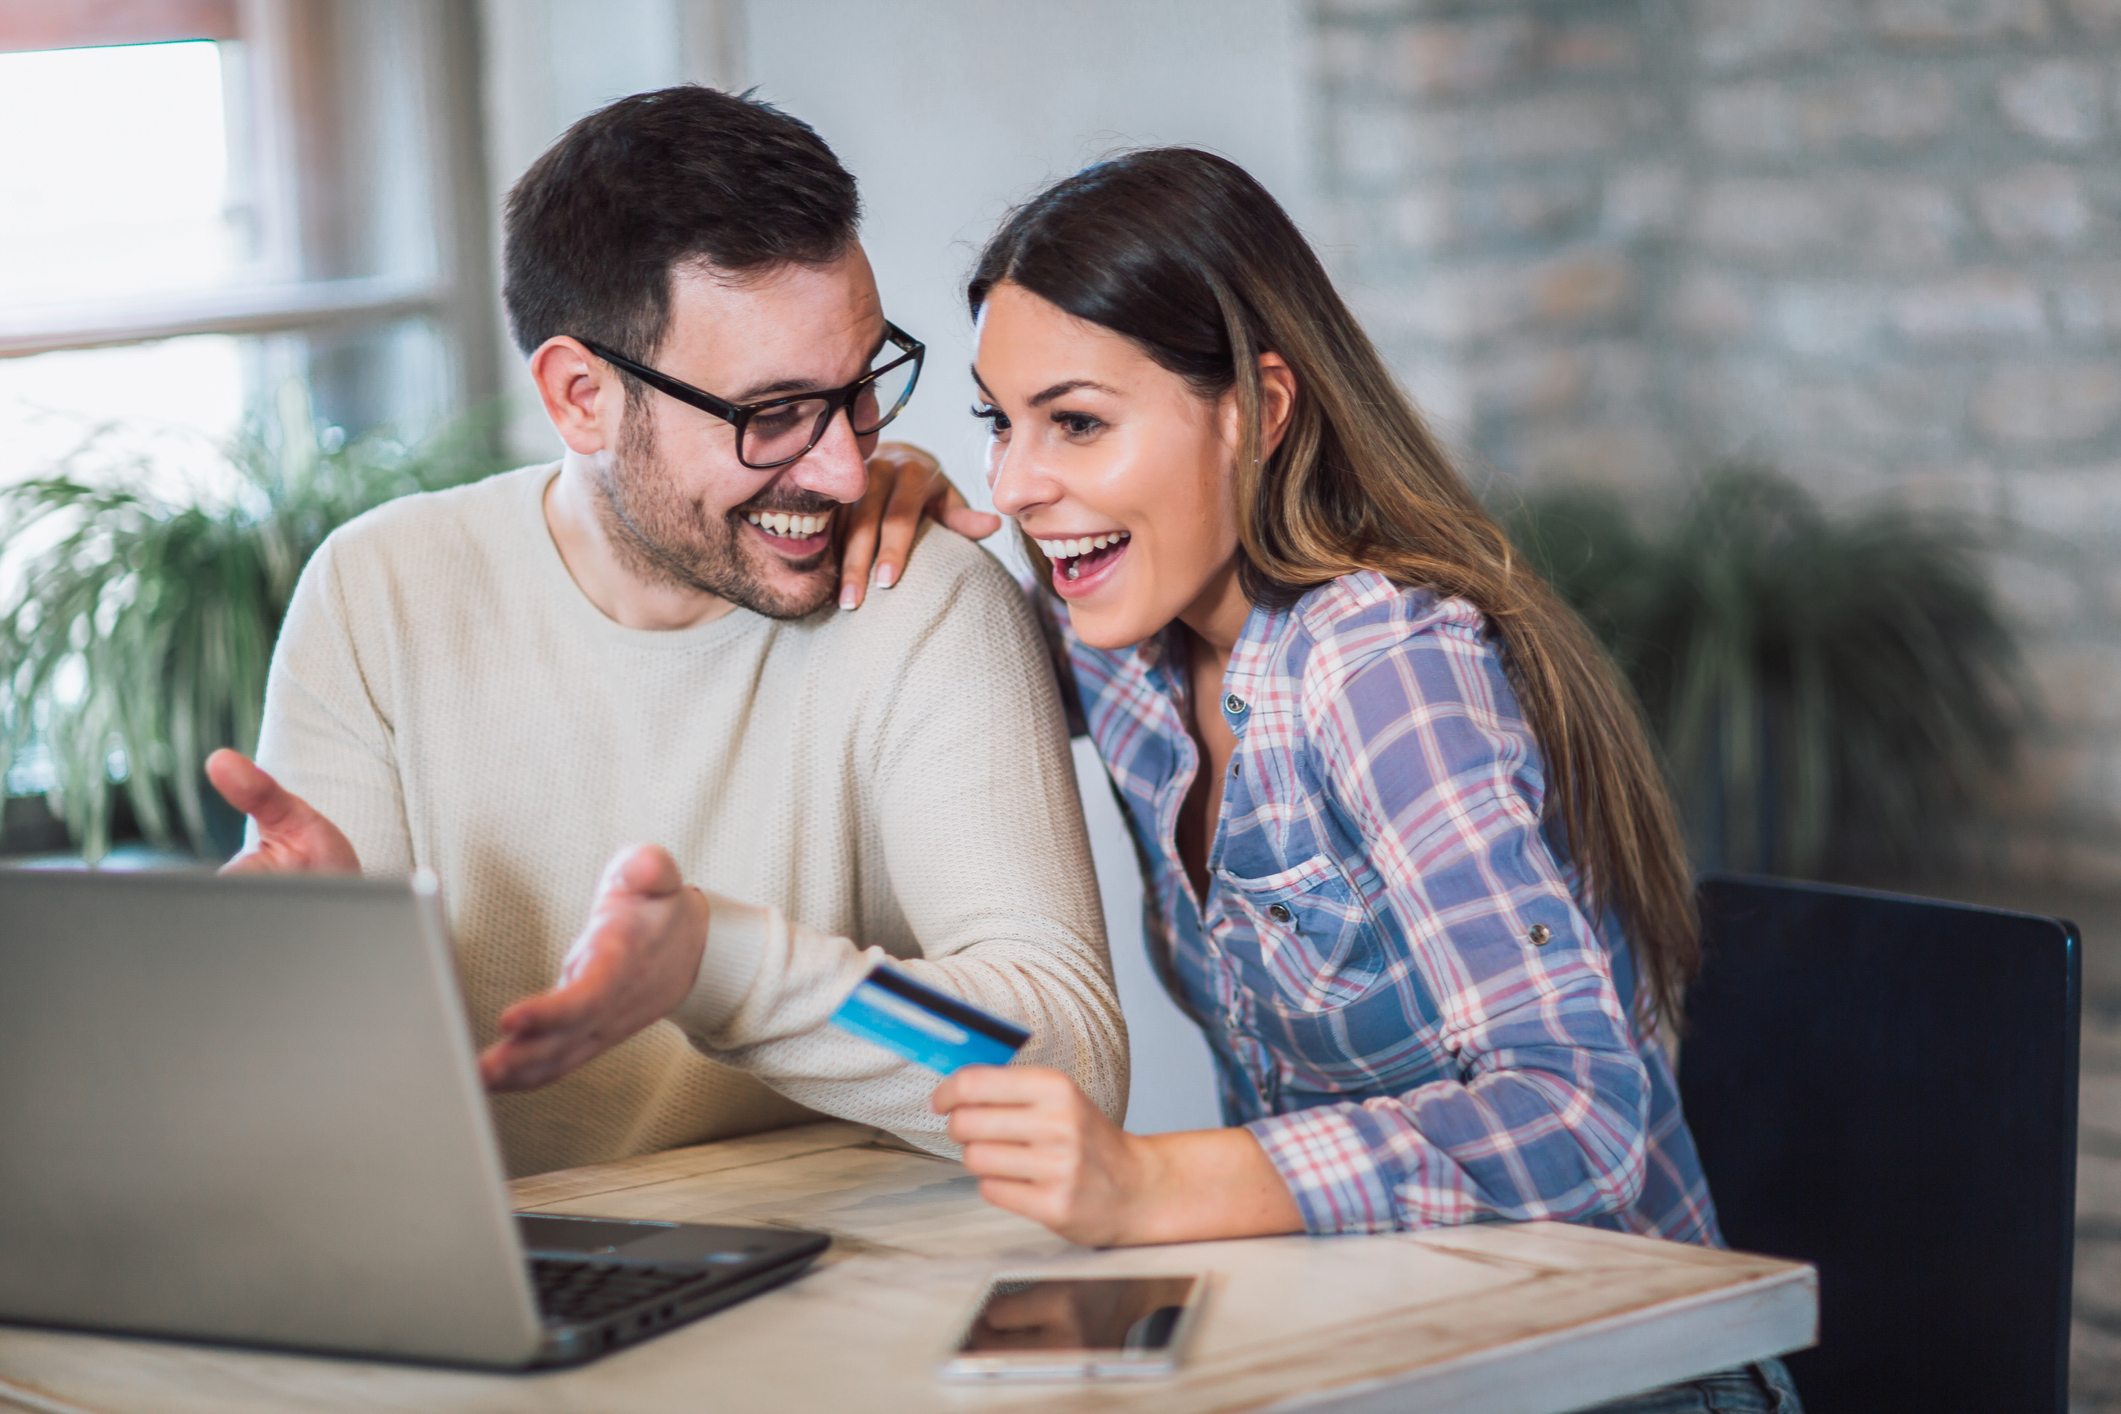 Excited Couple Looking At Good News On Laptop While Woman Holds A Credit Card